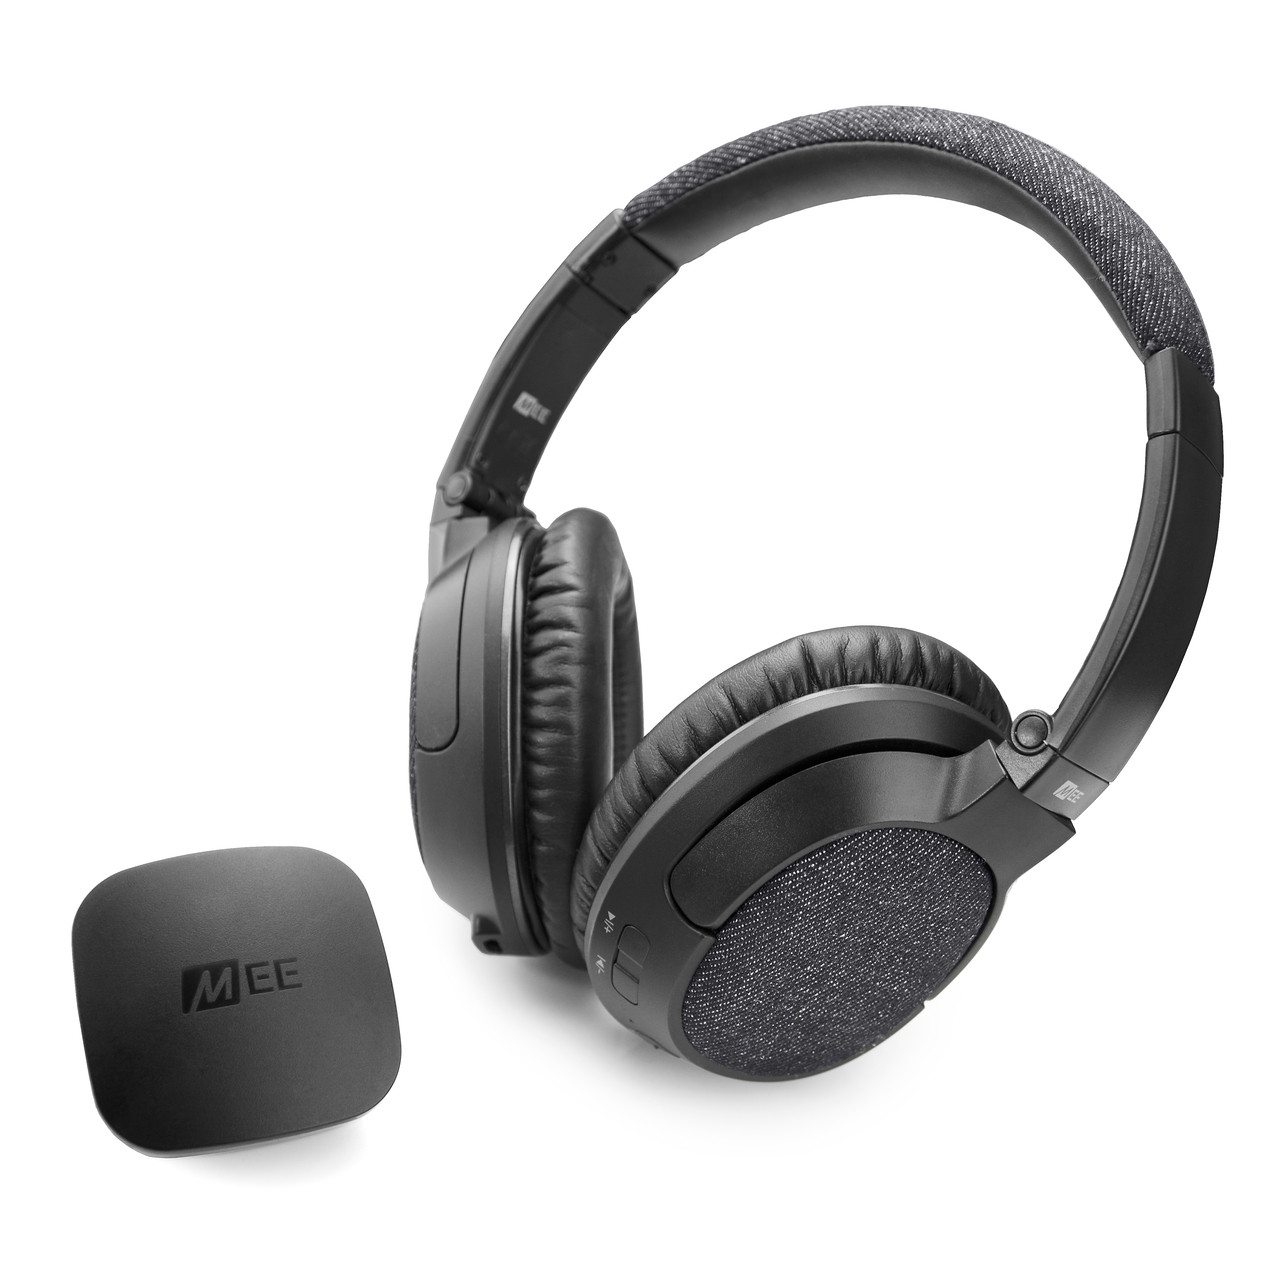 MEE audio | Connect Support Guide